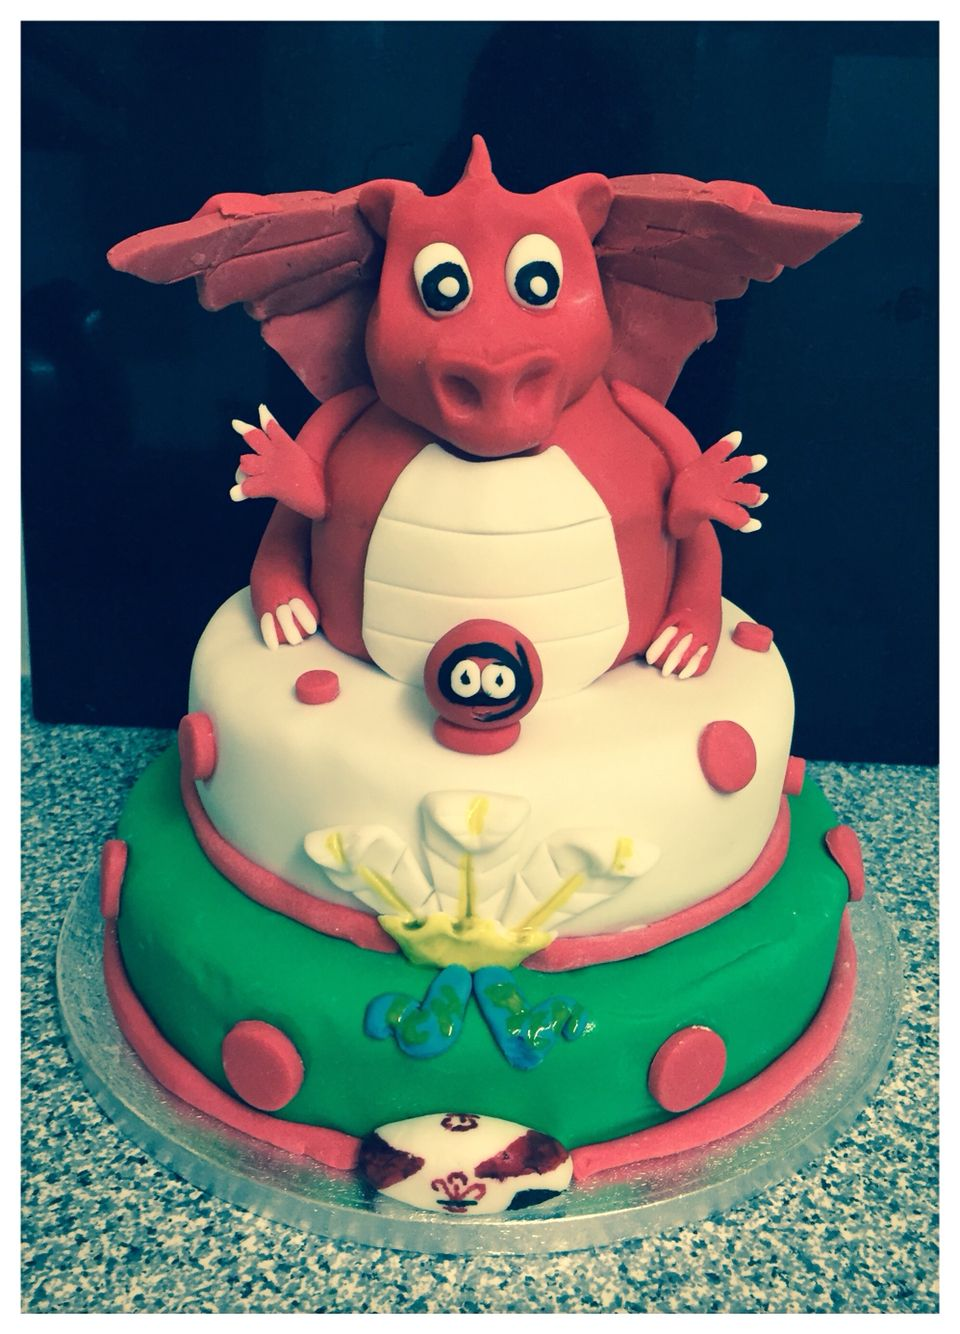 Welsh dragon rugby and Comic Relief themed cake CakeArt